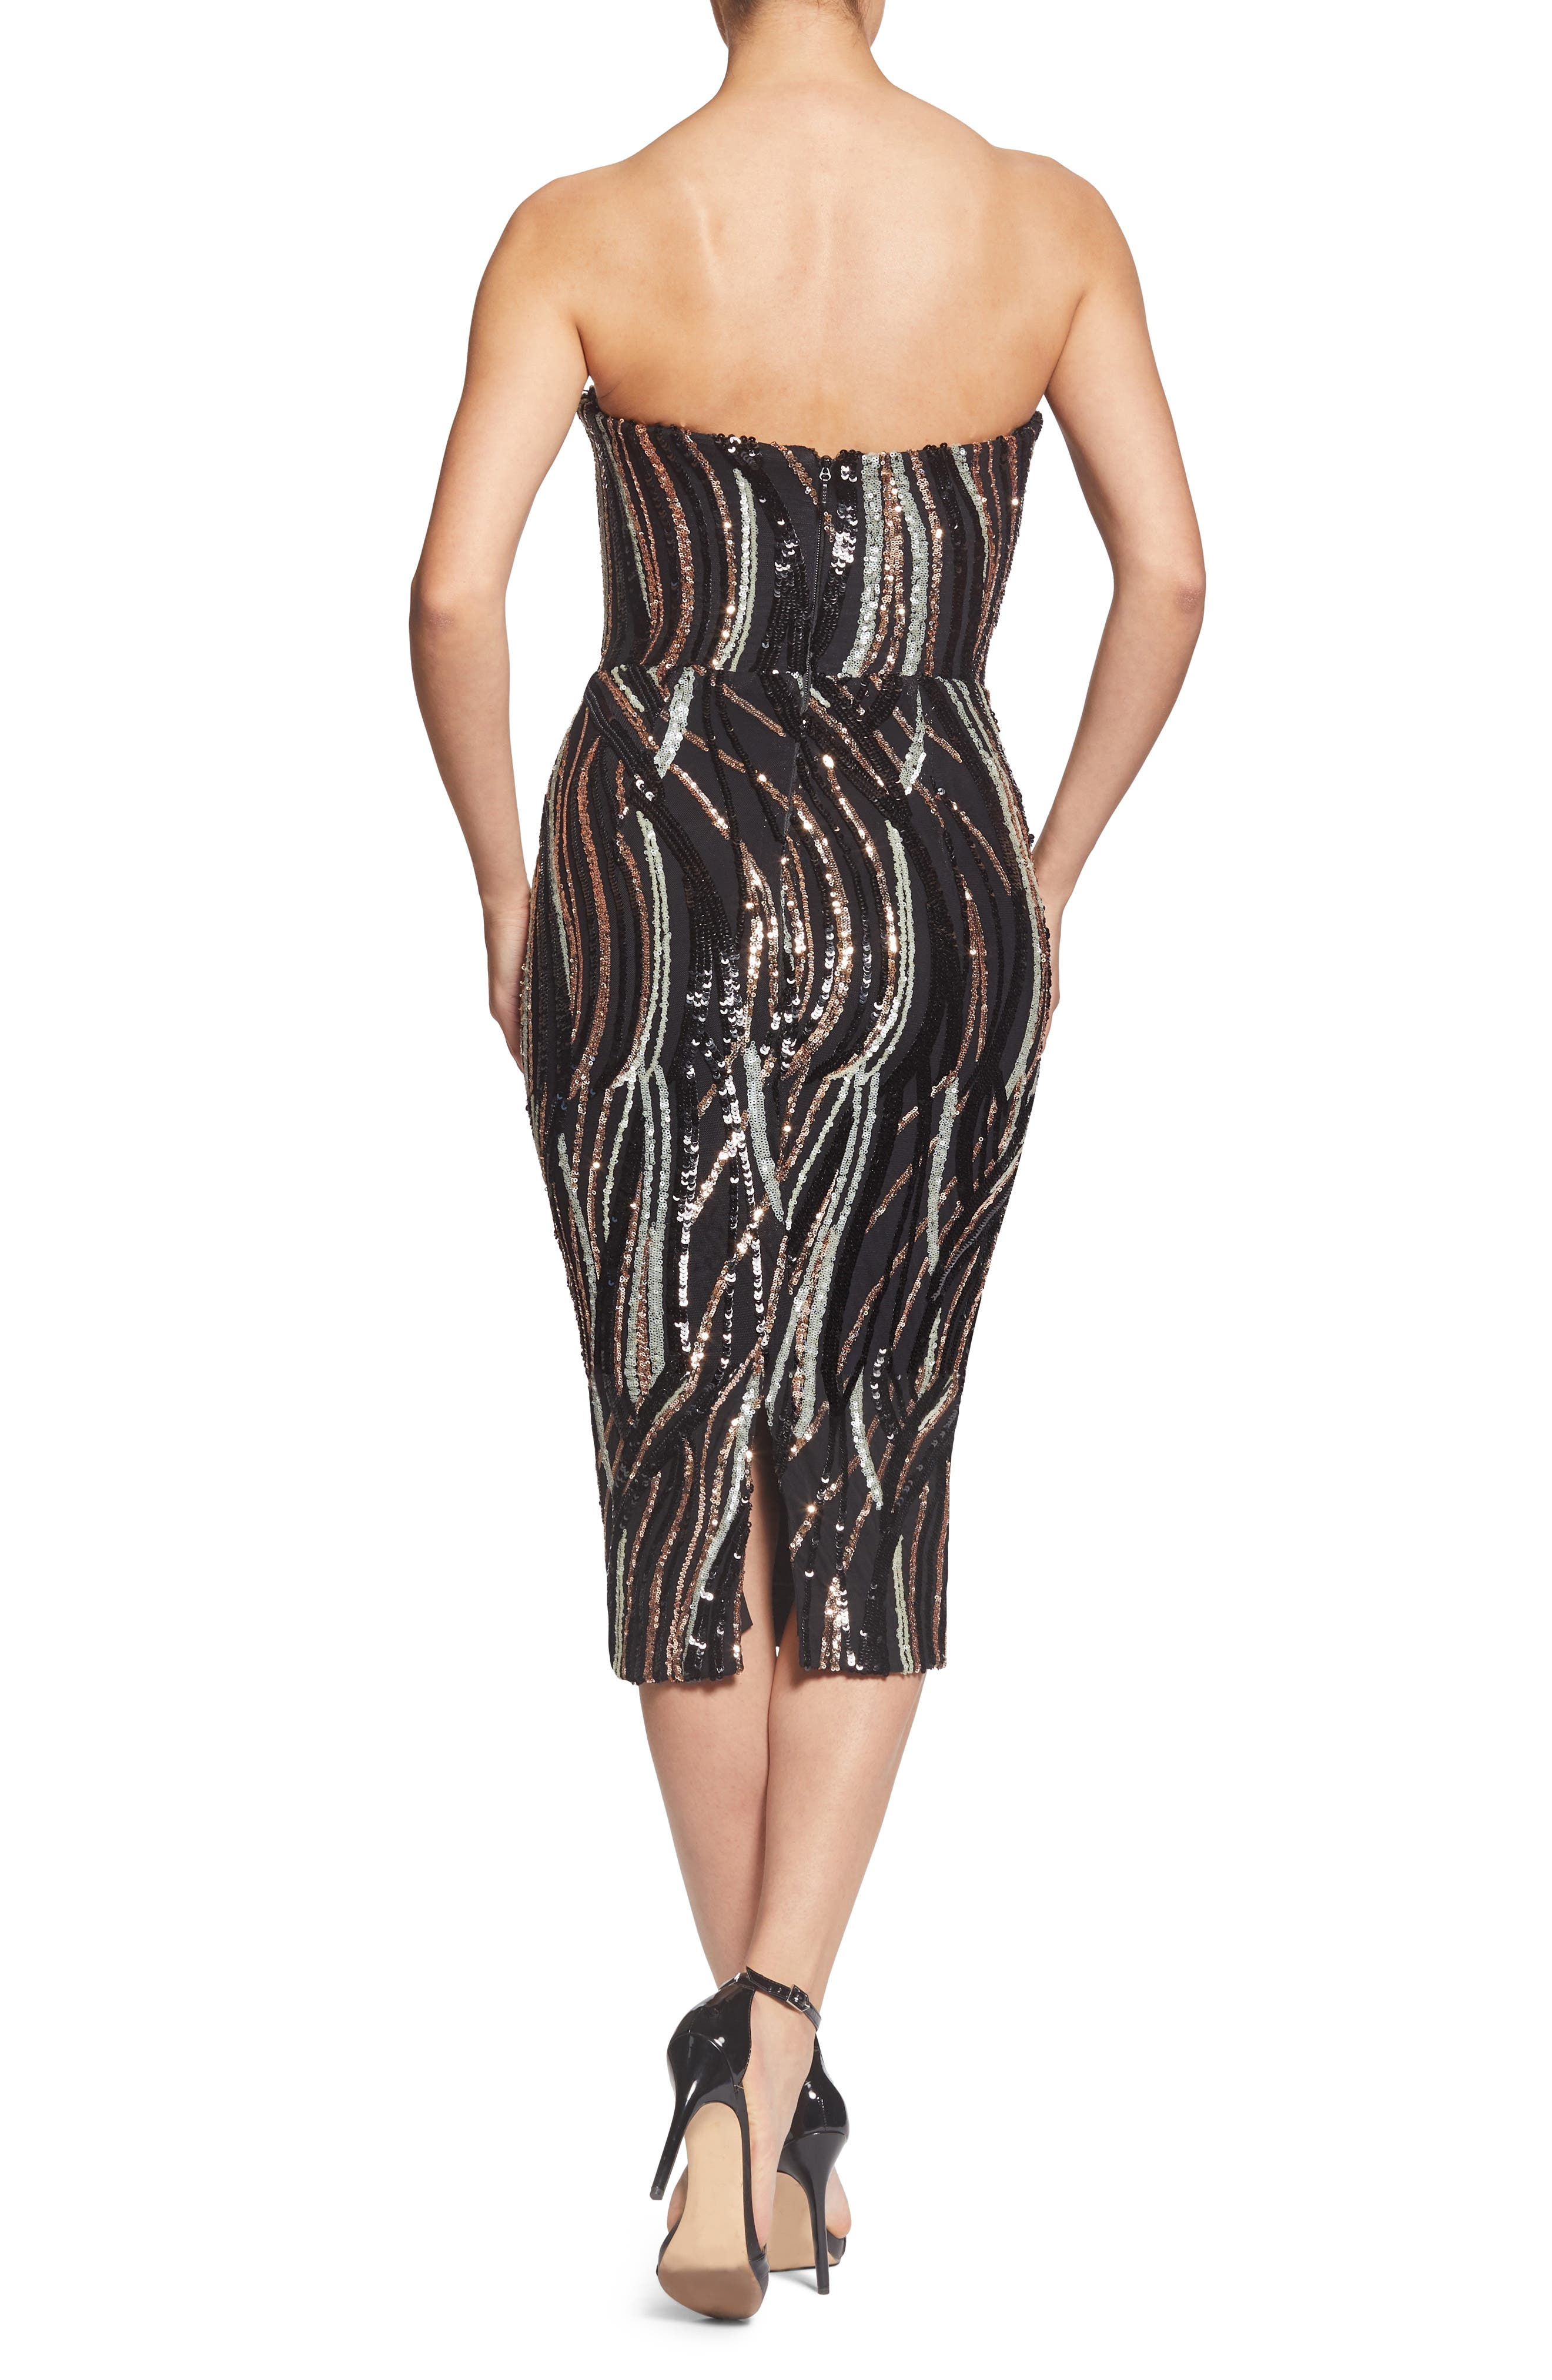 Claire Swirl Stripe Strapless Body-Con Dress,                             Alternate thumbnail 2, color,                             BLACK/ BRONZE/ BONE